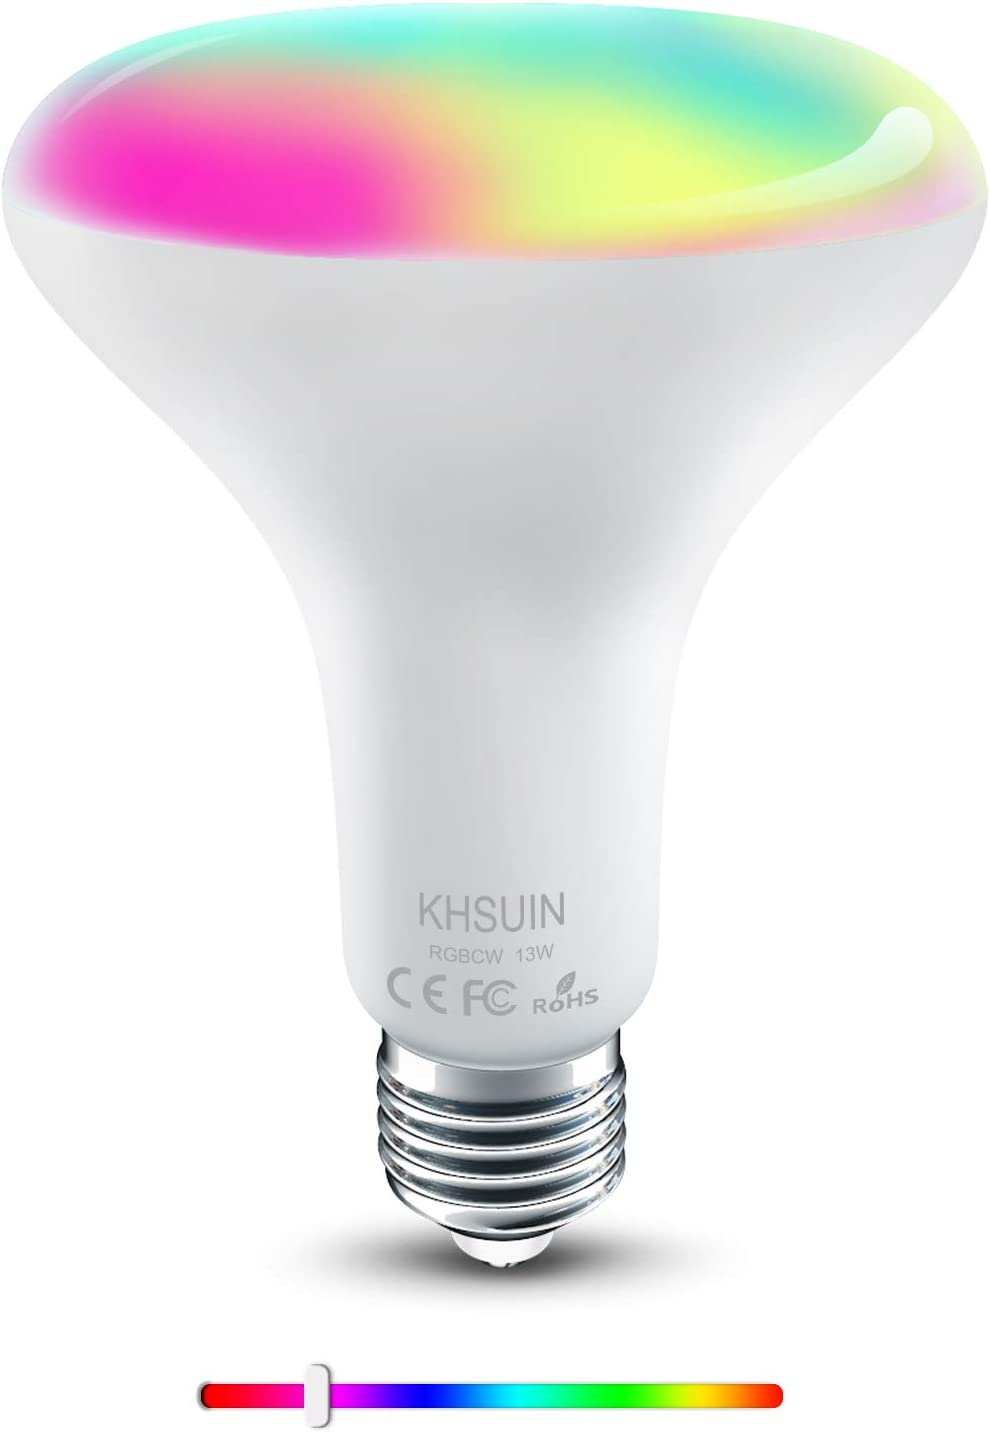 [2020 Upgrade] Smart Bulb,2.4G WiFi E26 BR30 13W(100w Equivalent) RGBCW Color Changing Light Bulb Compatible with Alexa and Google Assistant,Smart Bulbs That Work with Alexa